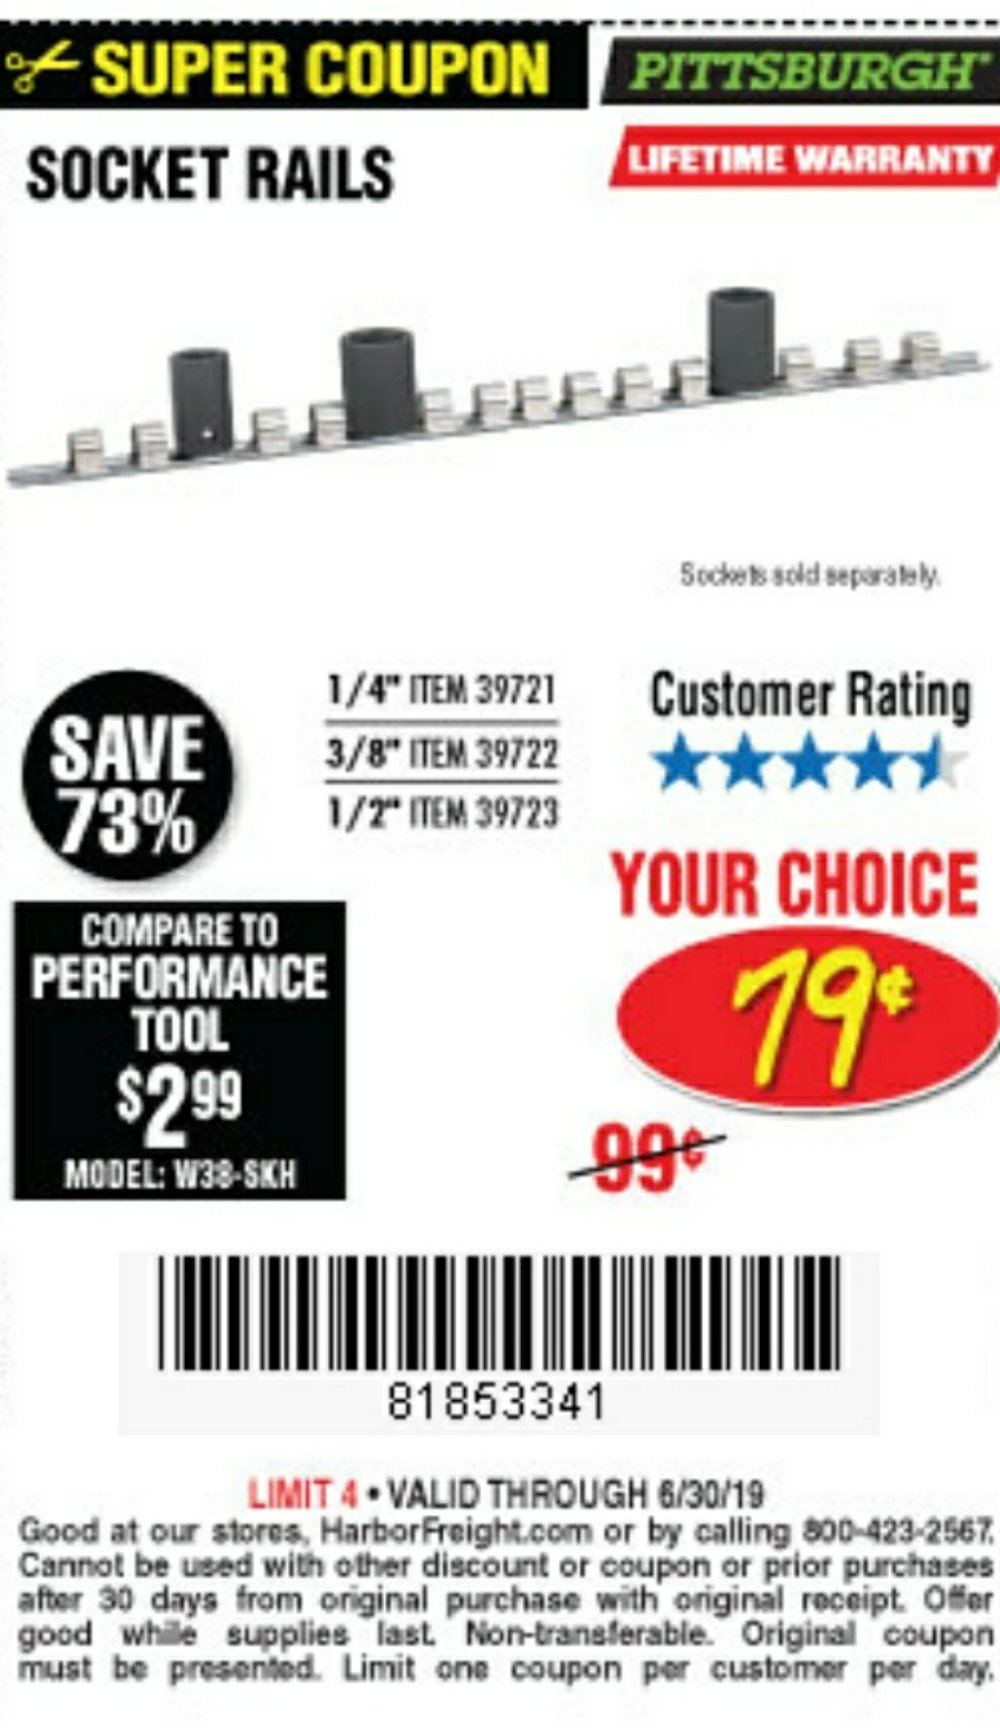 Harbor Freight Coupon, HF Coupons - Socket Rails